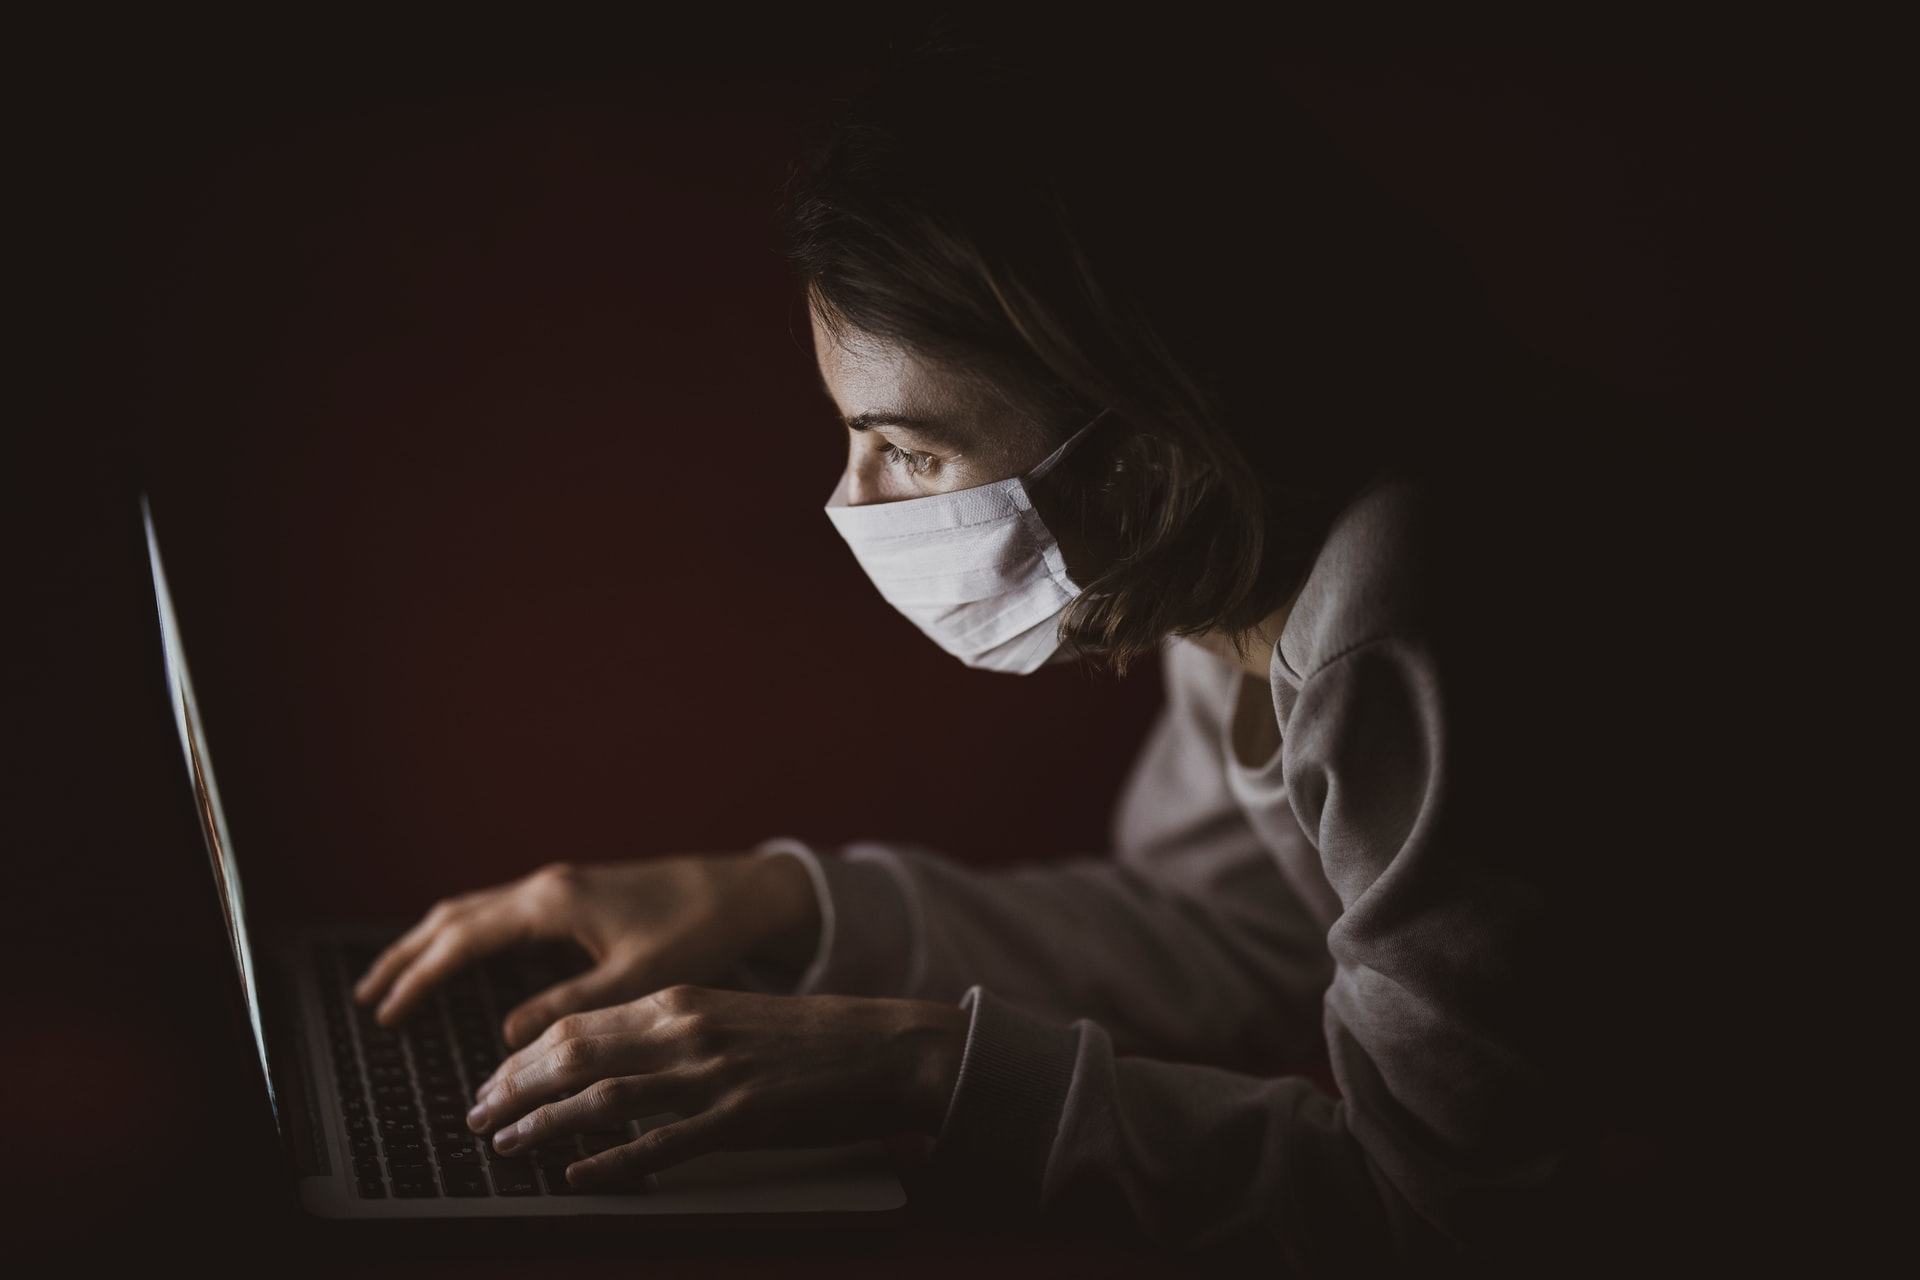 Person using their laptop in the dark with a surgical mask on. Photo courtesy of Egin Akyurt on Unsplash.